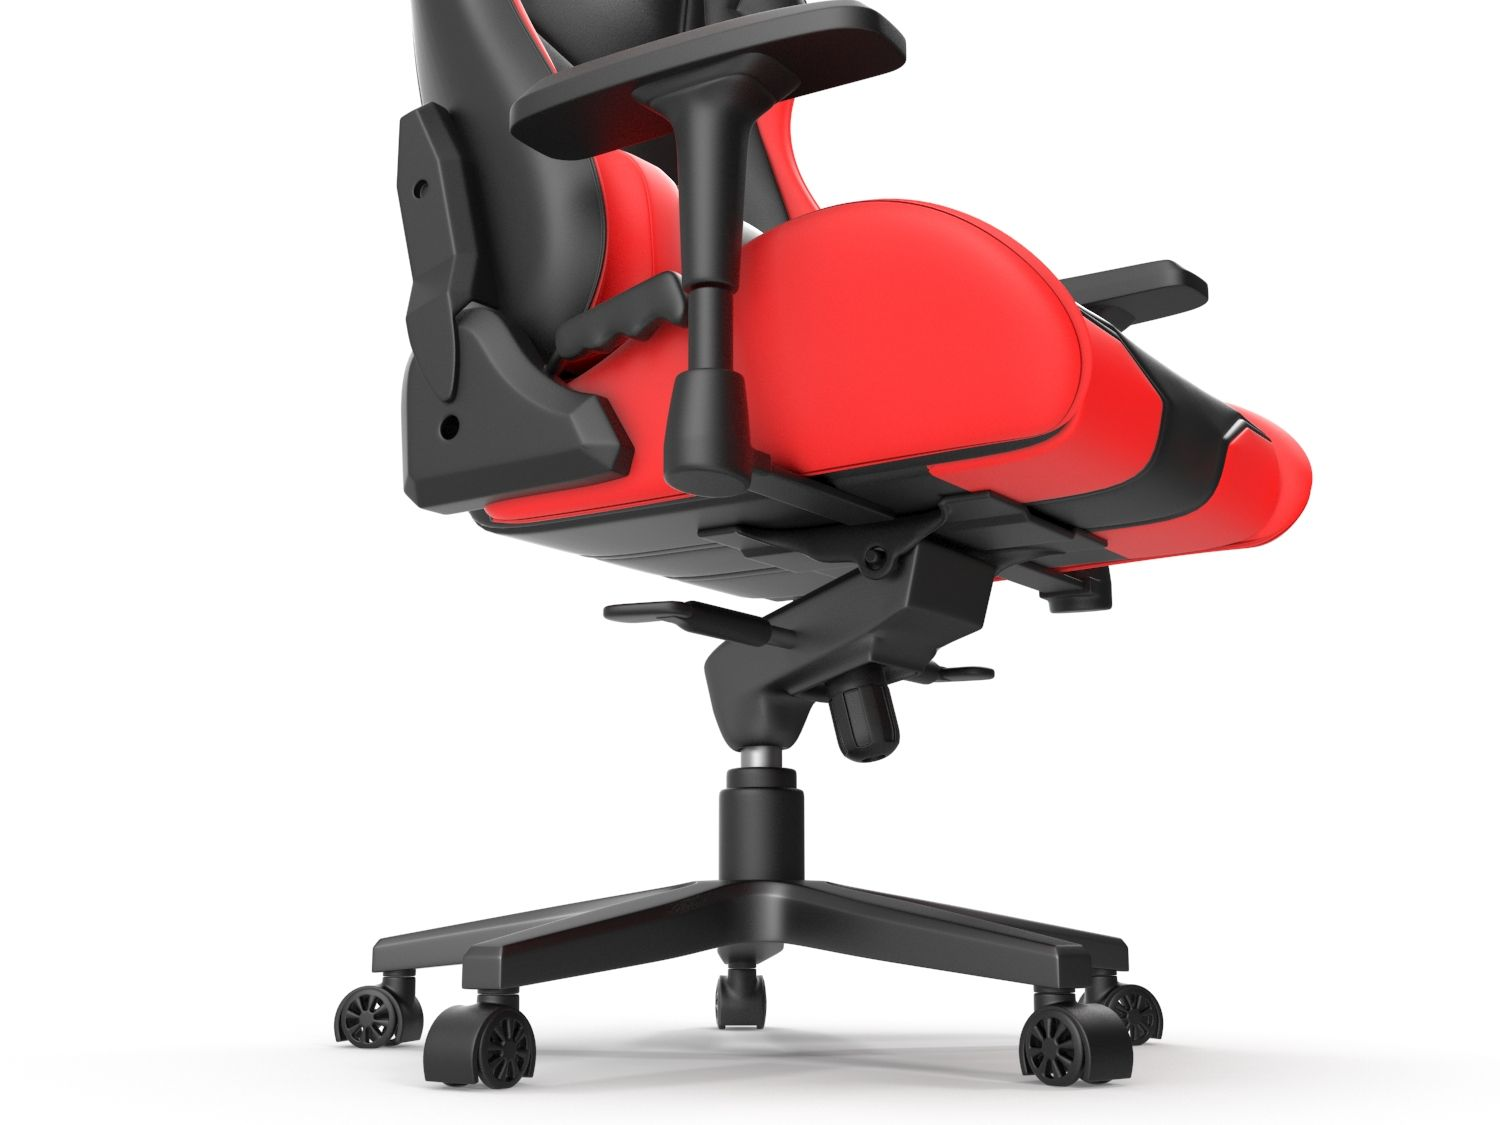 Opchair Computer Gaming Chair Gaming Chair Gaming Computer Outdoor Chaise Lounge Chair